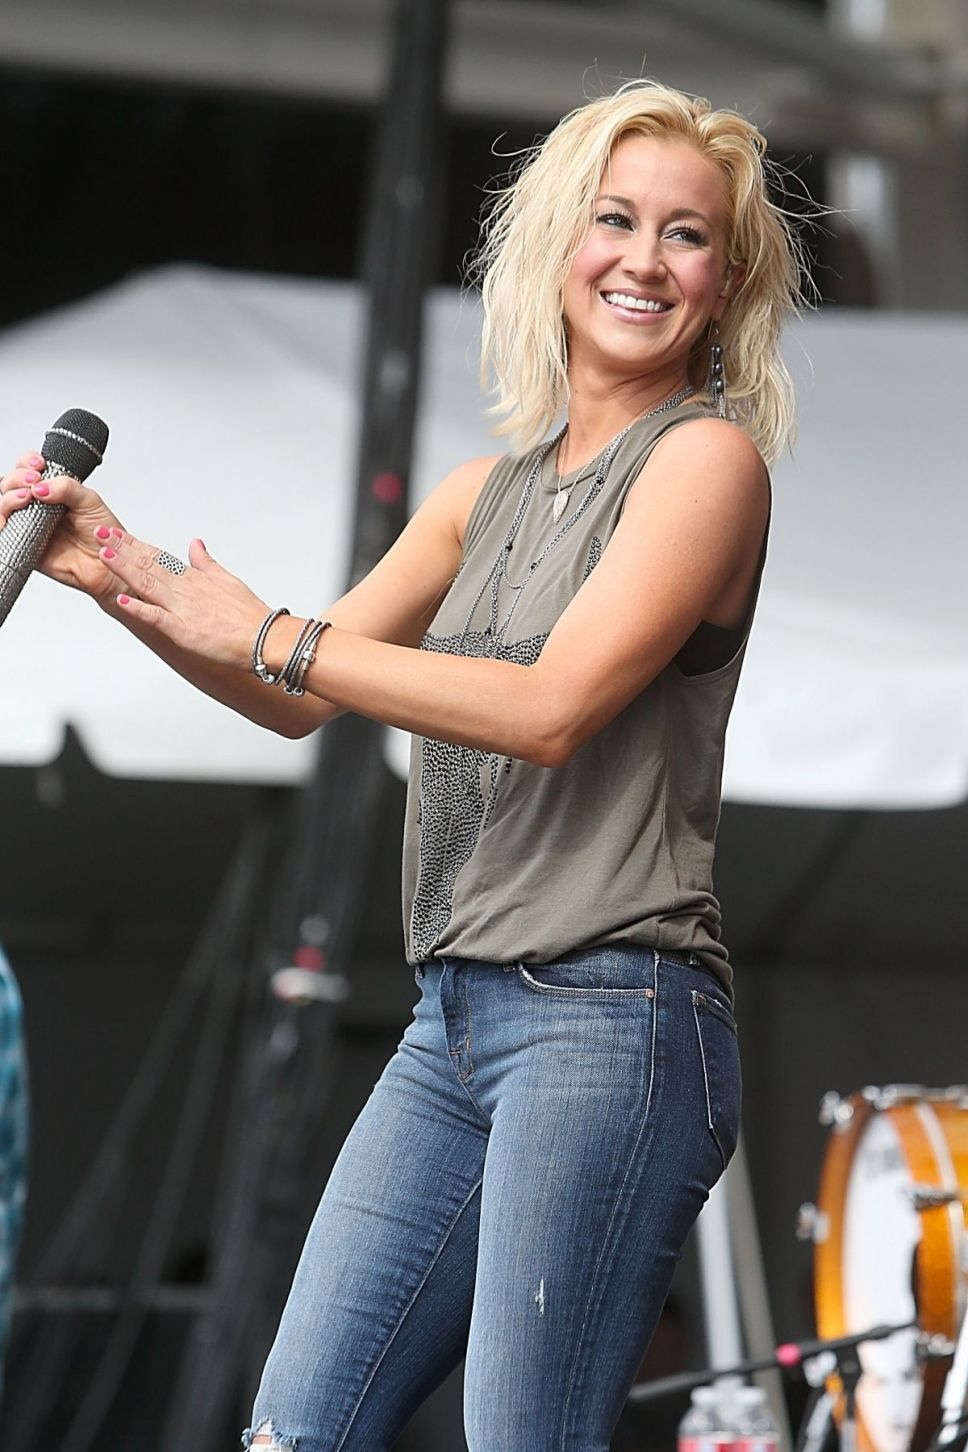 women in american country music Some of the biggest selling and most popular singers in country music are women with their heartfelt lyrics, strong vocal range, and magnetic personalities, these female country singers are many country music fans' favorite vocalists.